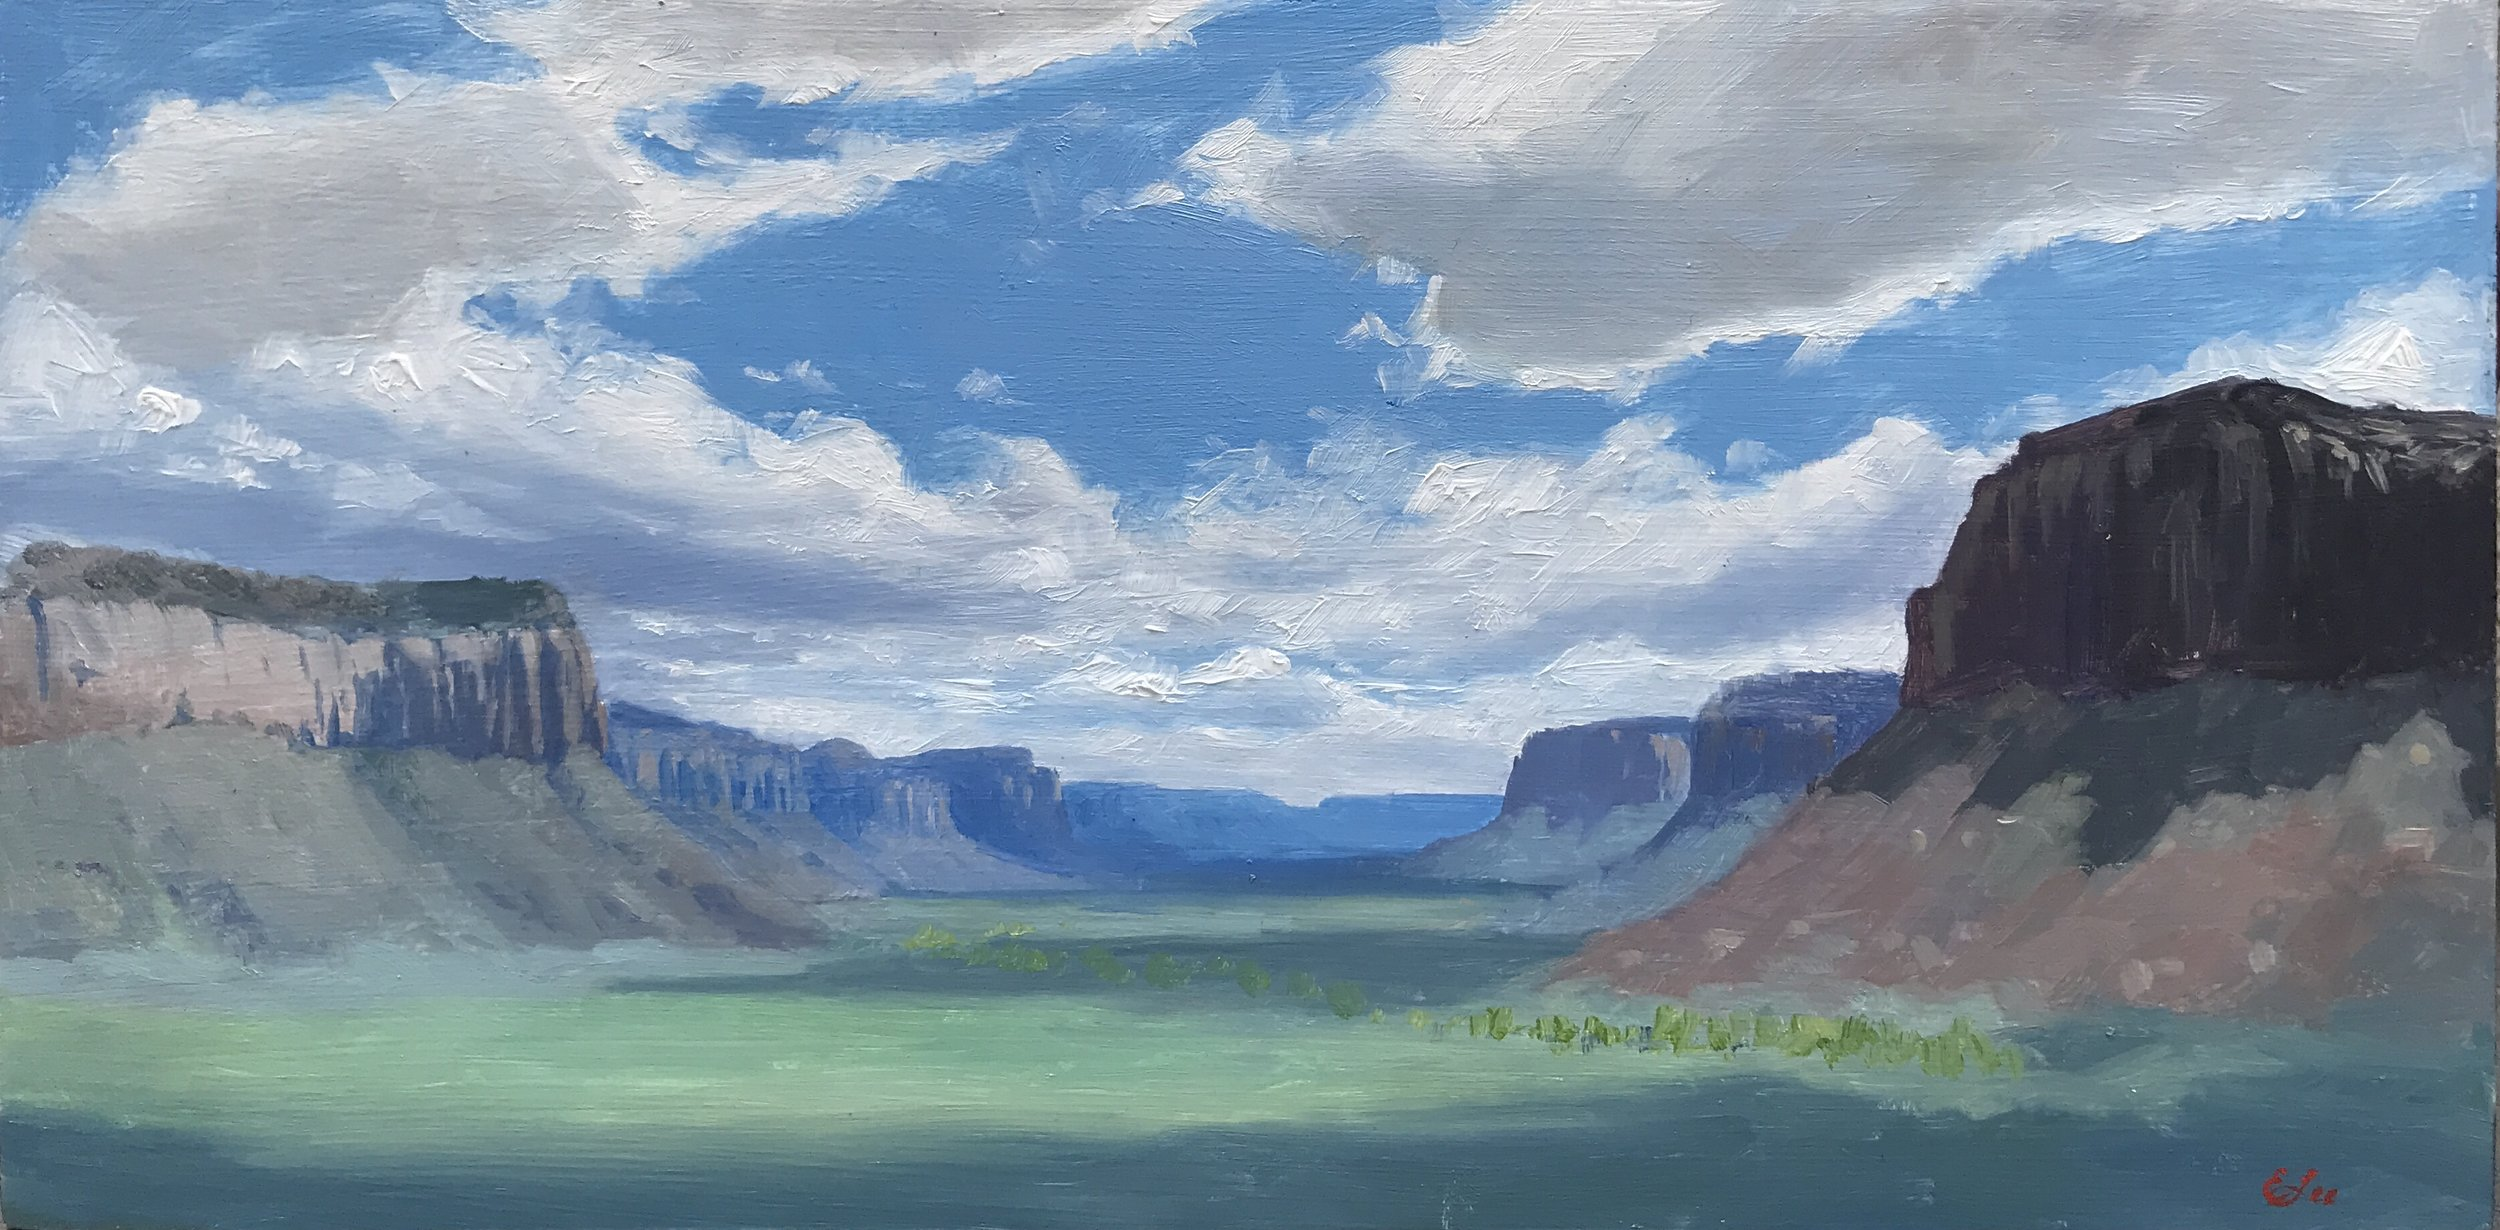 Indian Creek Canyon  by Emilie Lee, 2019, 6 x 12 in, oil.